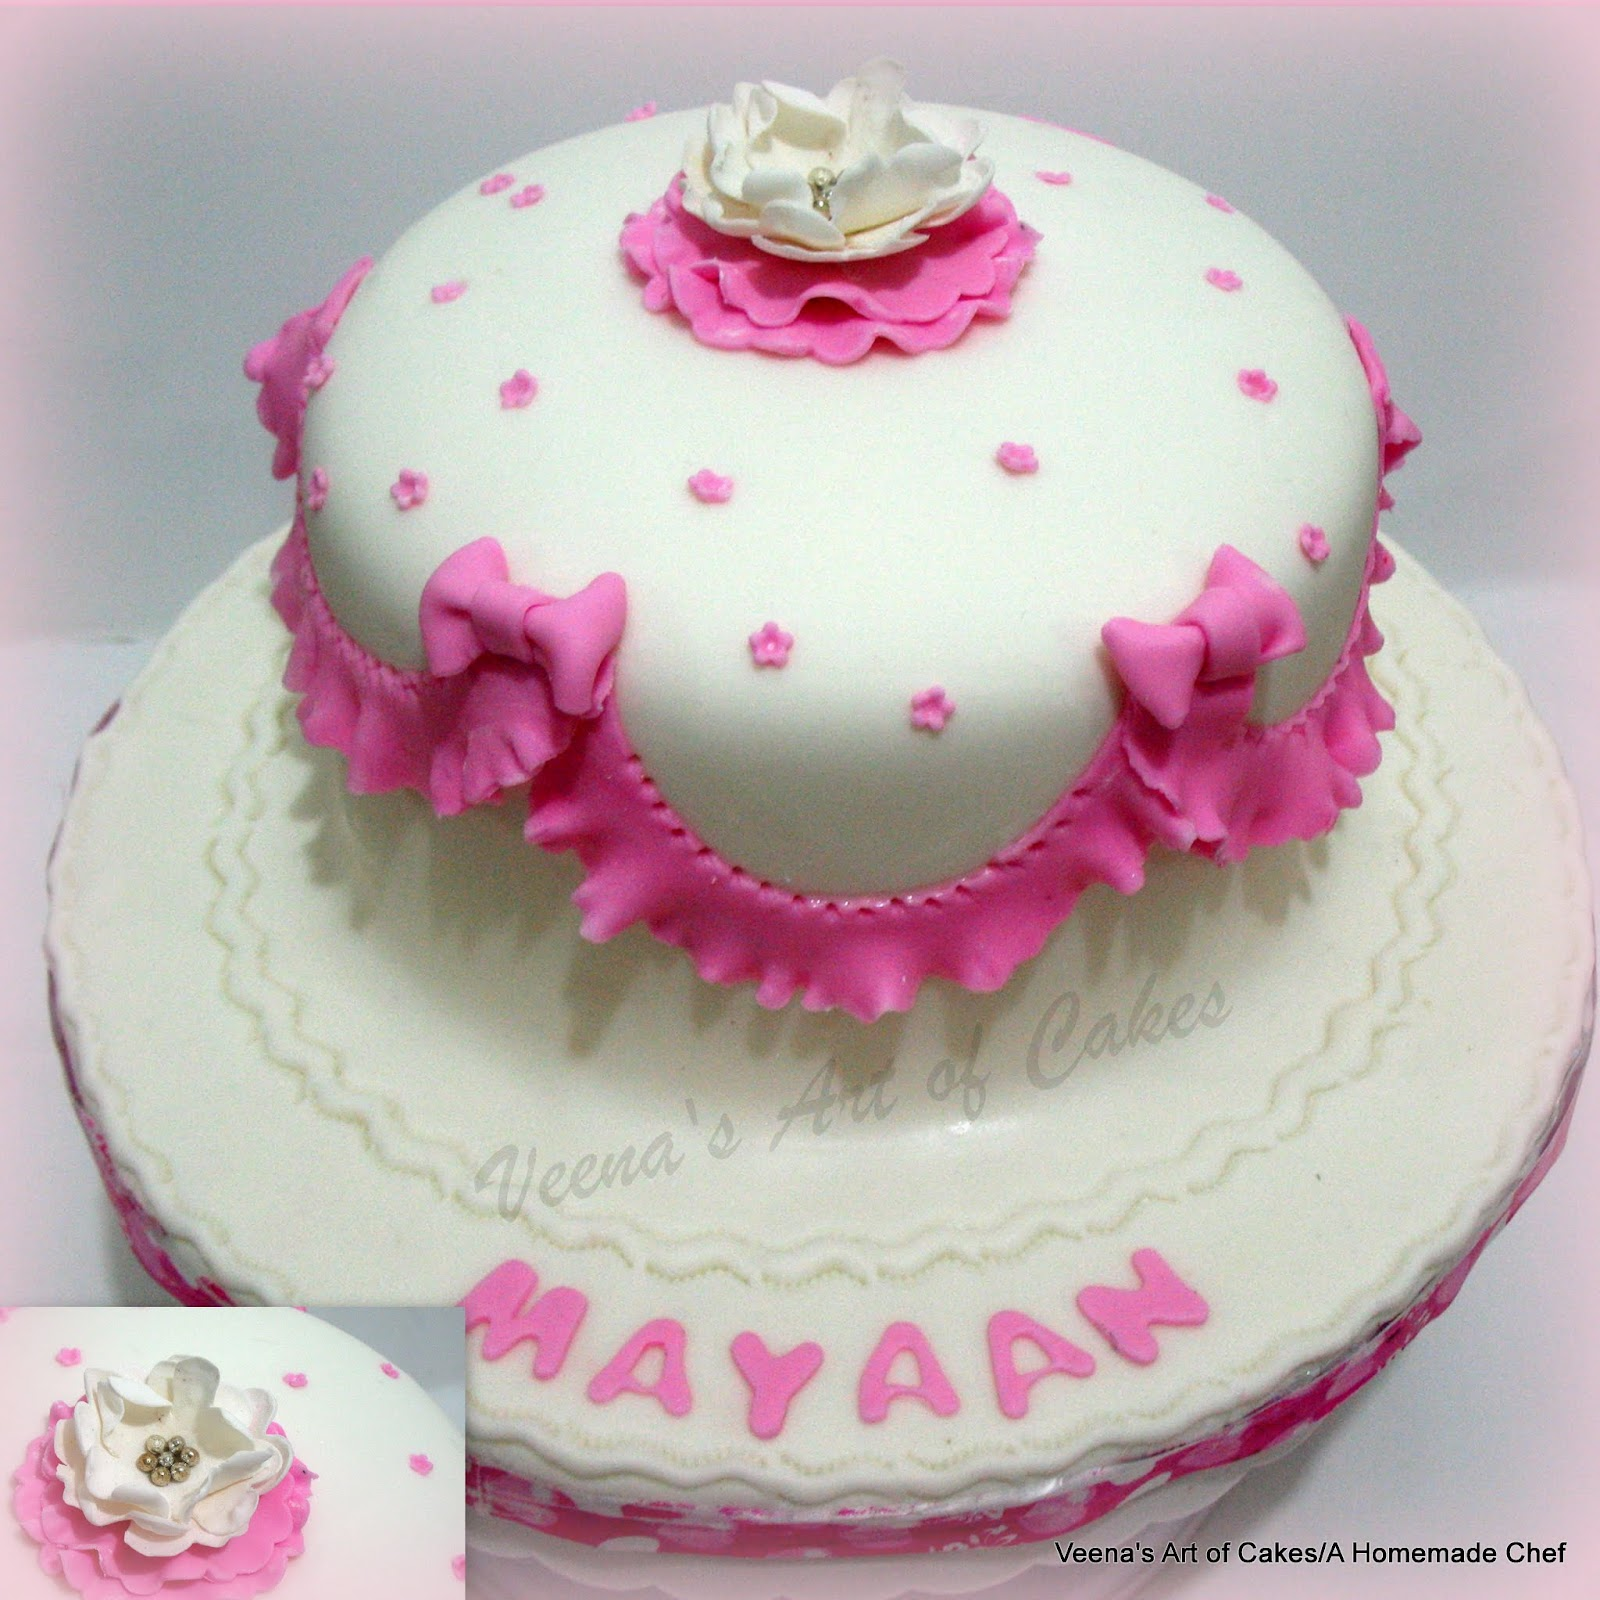 How To Make Ruffles And Frills On Cakes Veena Azmanov